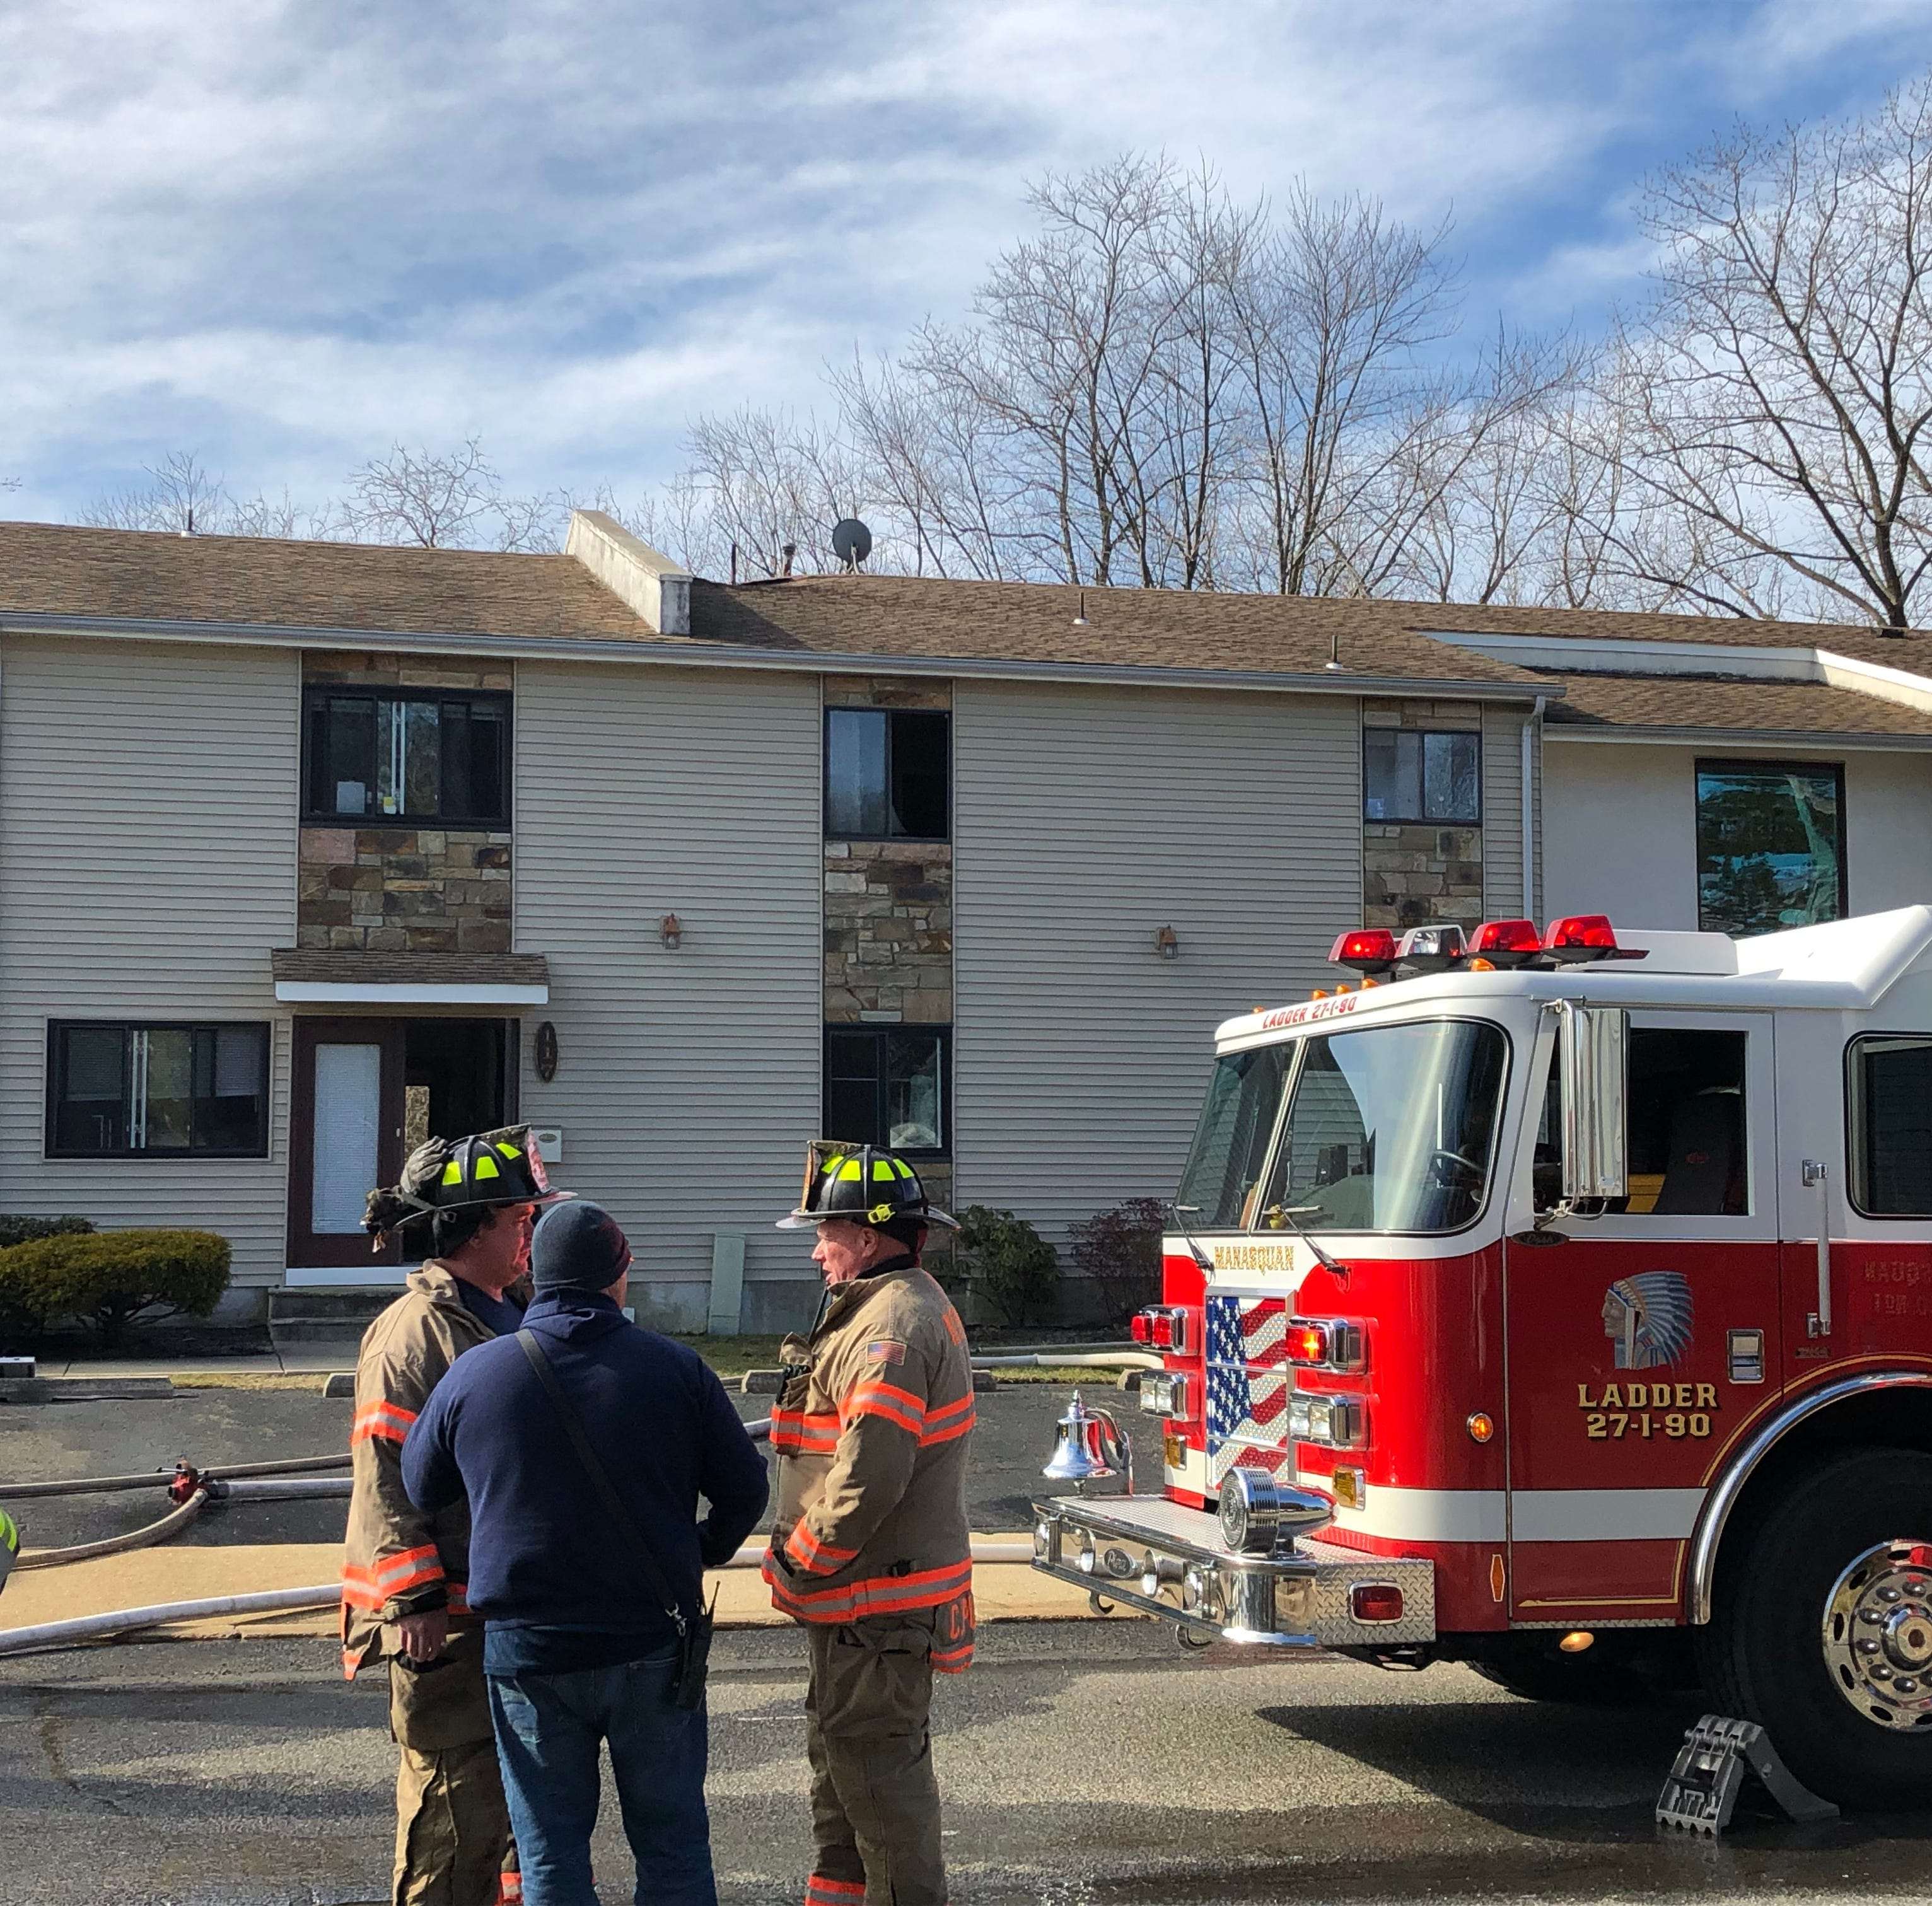 Bathroom exhaust fan possible source of Manasquan condo fire